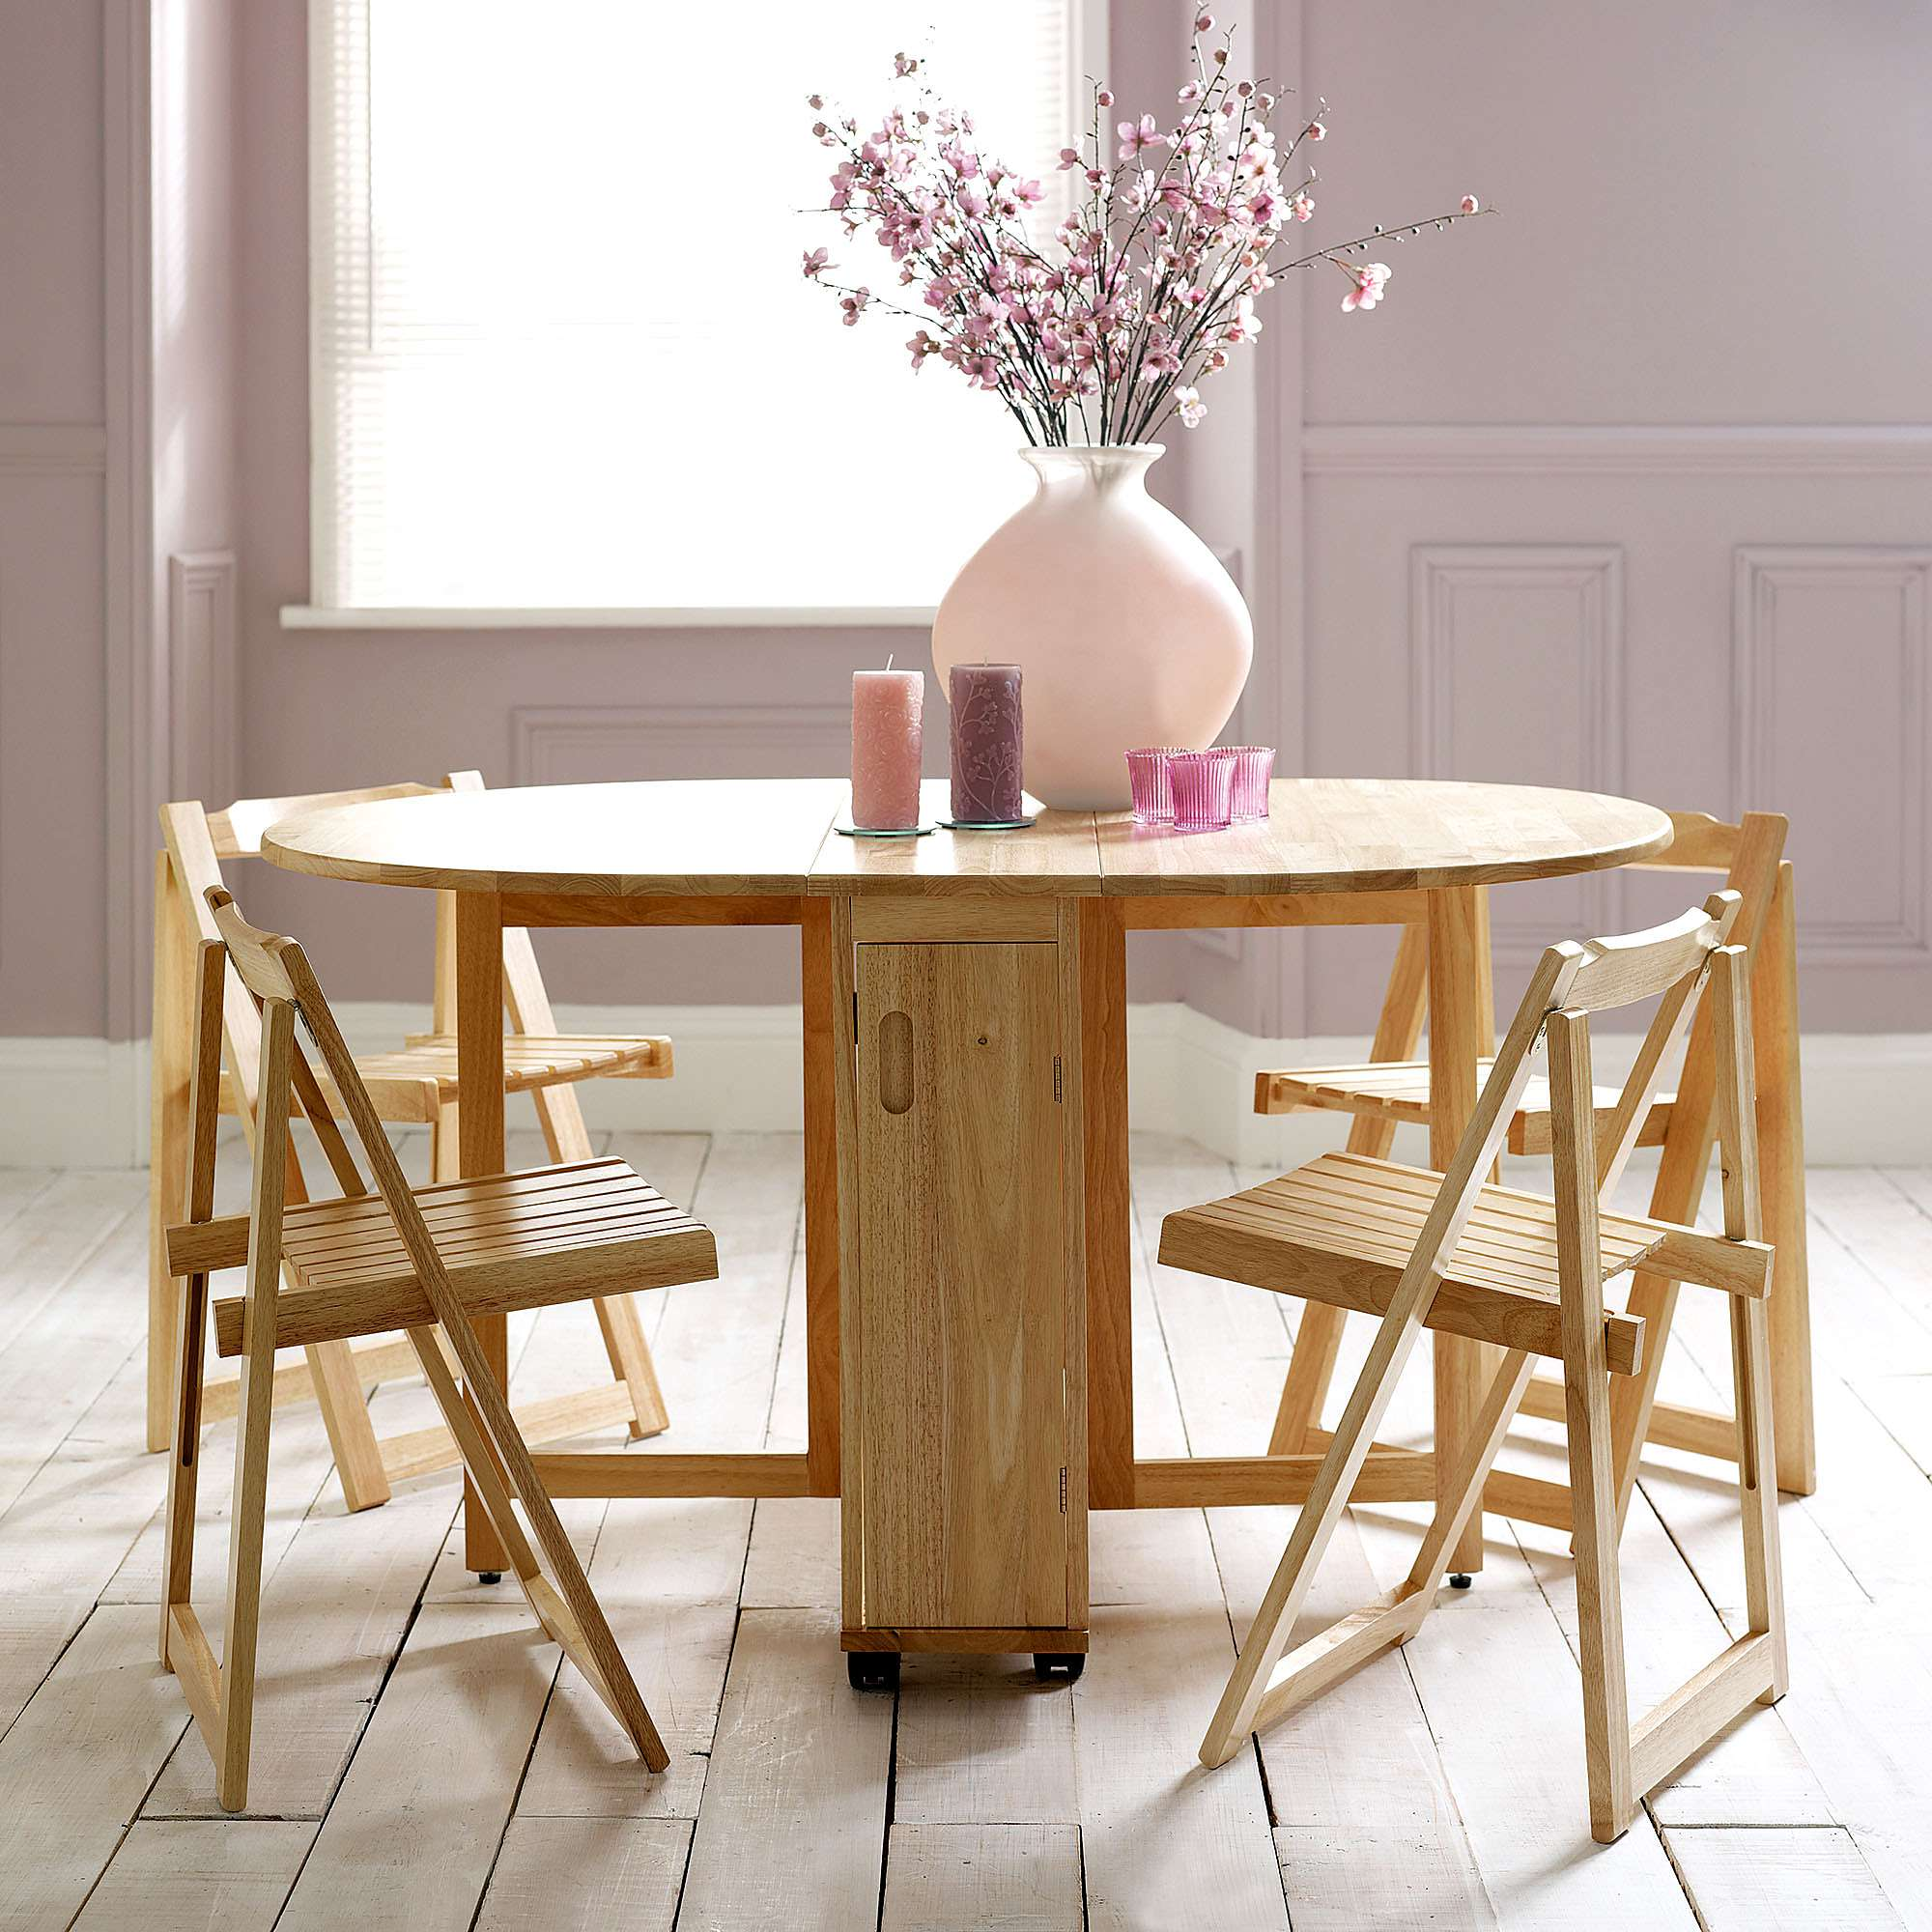 Choose a folding dining table for a small space adorable for Eating tables for small spaces